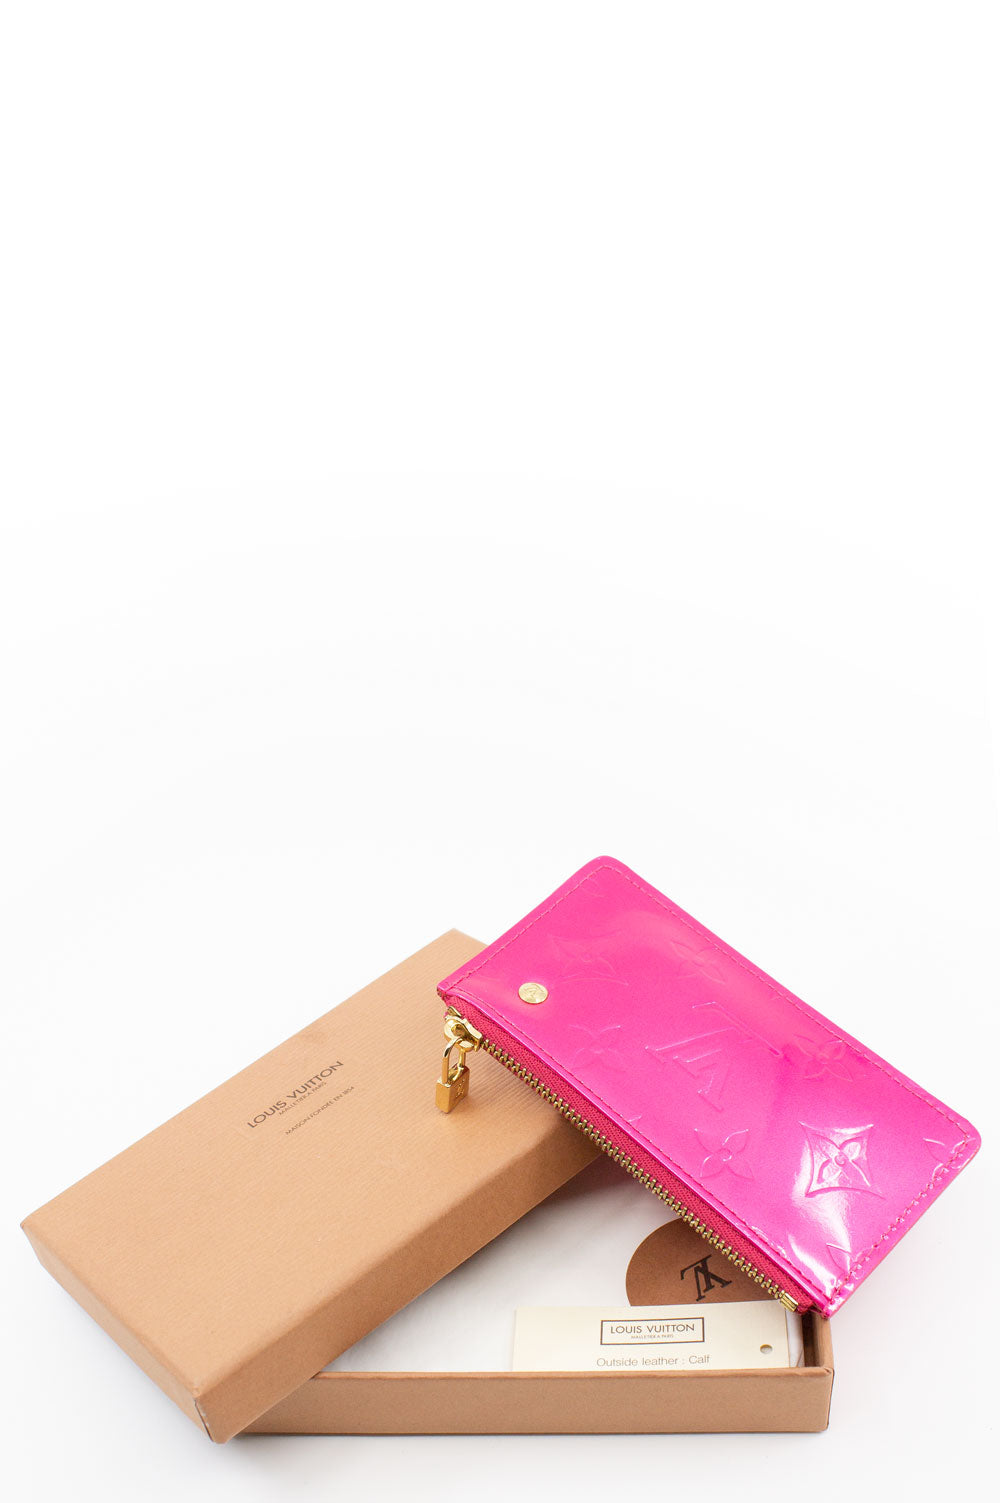 Louis Vuitton Pink Vernis Leather Key Pouche